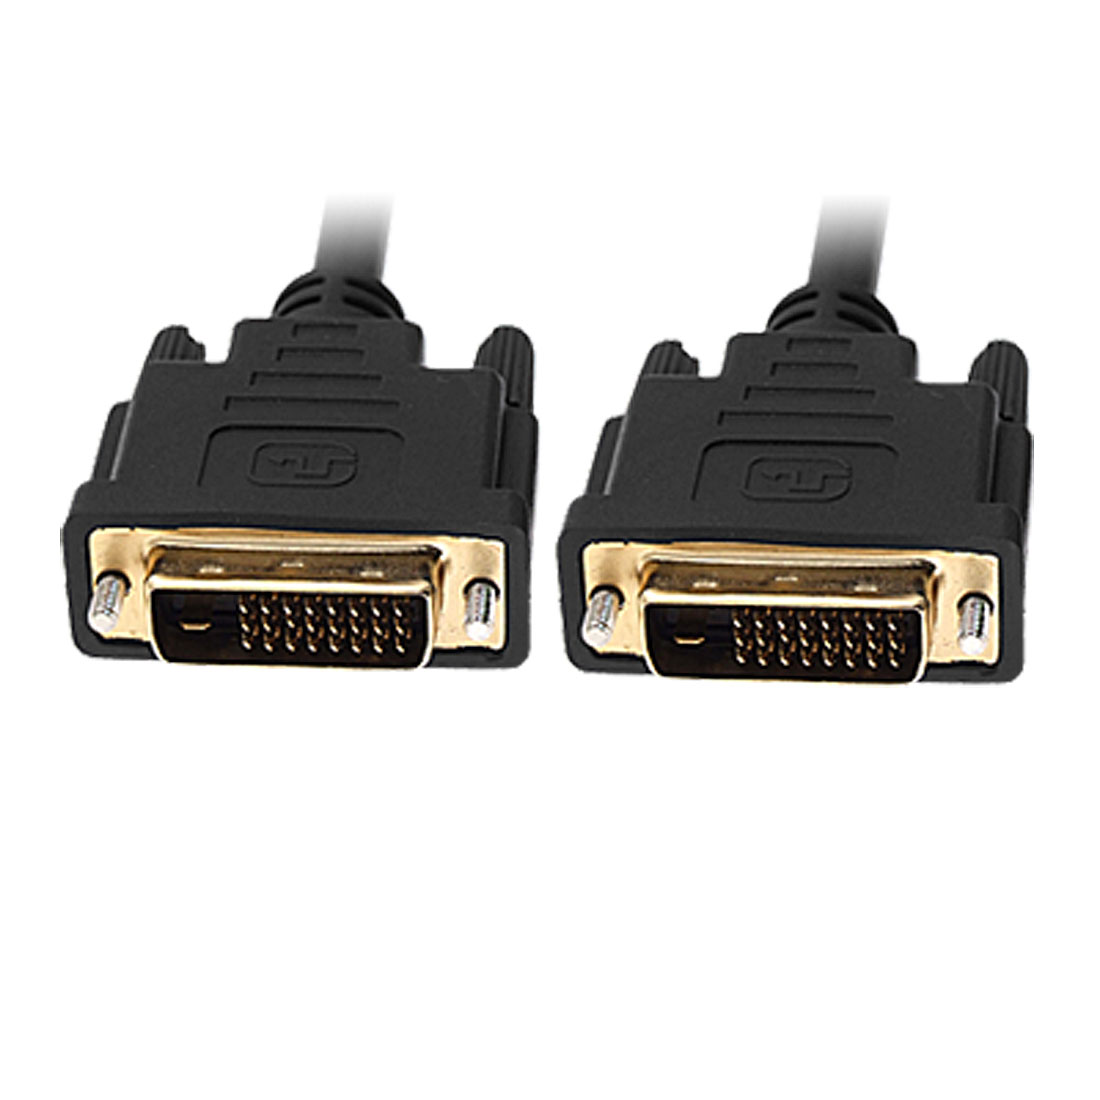 DVI-D 24+1 Male to Male LCD Video Adapter Cable 3 Meters